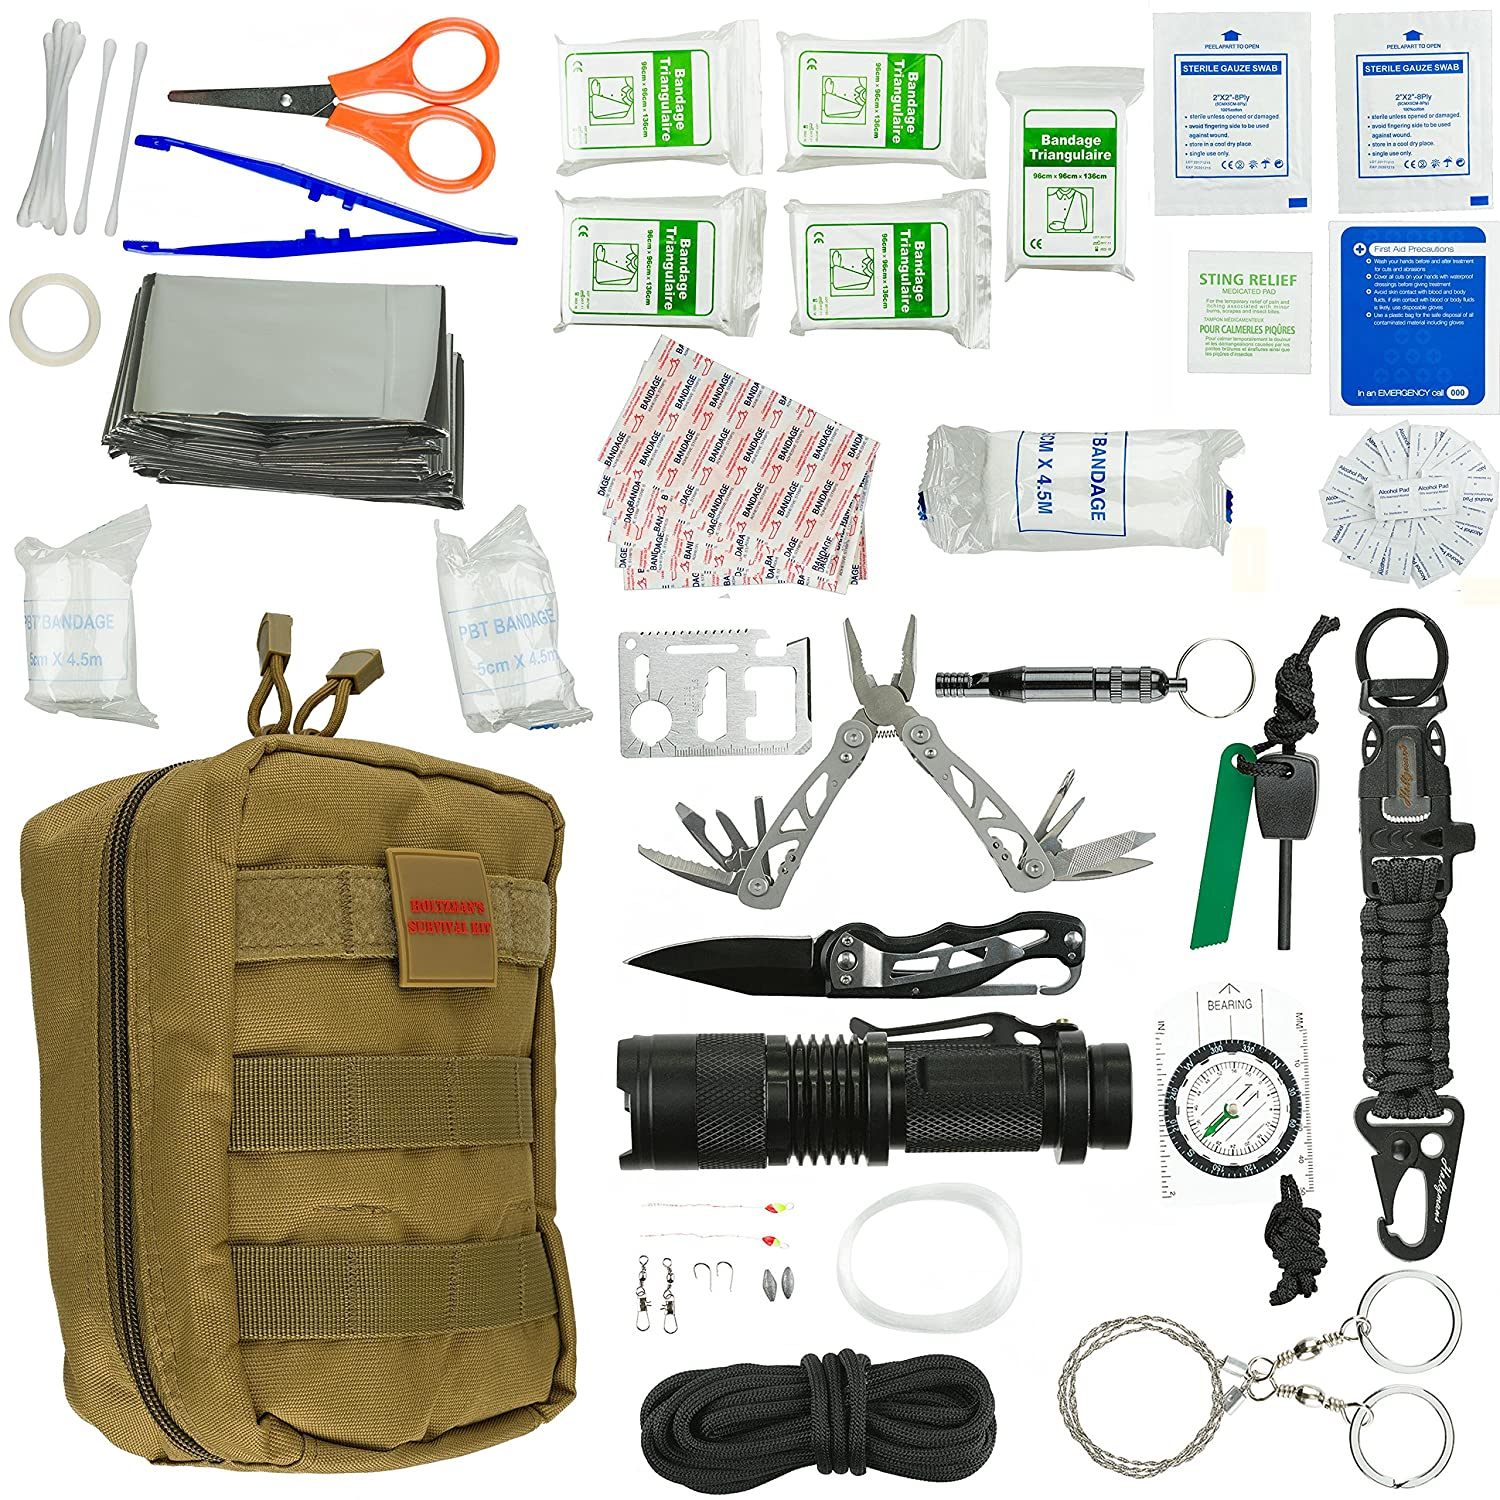 Emergency Survival Kit Ultimate 98-in-1 Outdoor Multi-Tools for Camping, Hiking, Hunting Fishing First Aid Supplies All Inclusive Survival Gear with Box for Campers Preppers